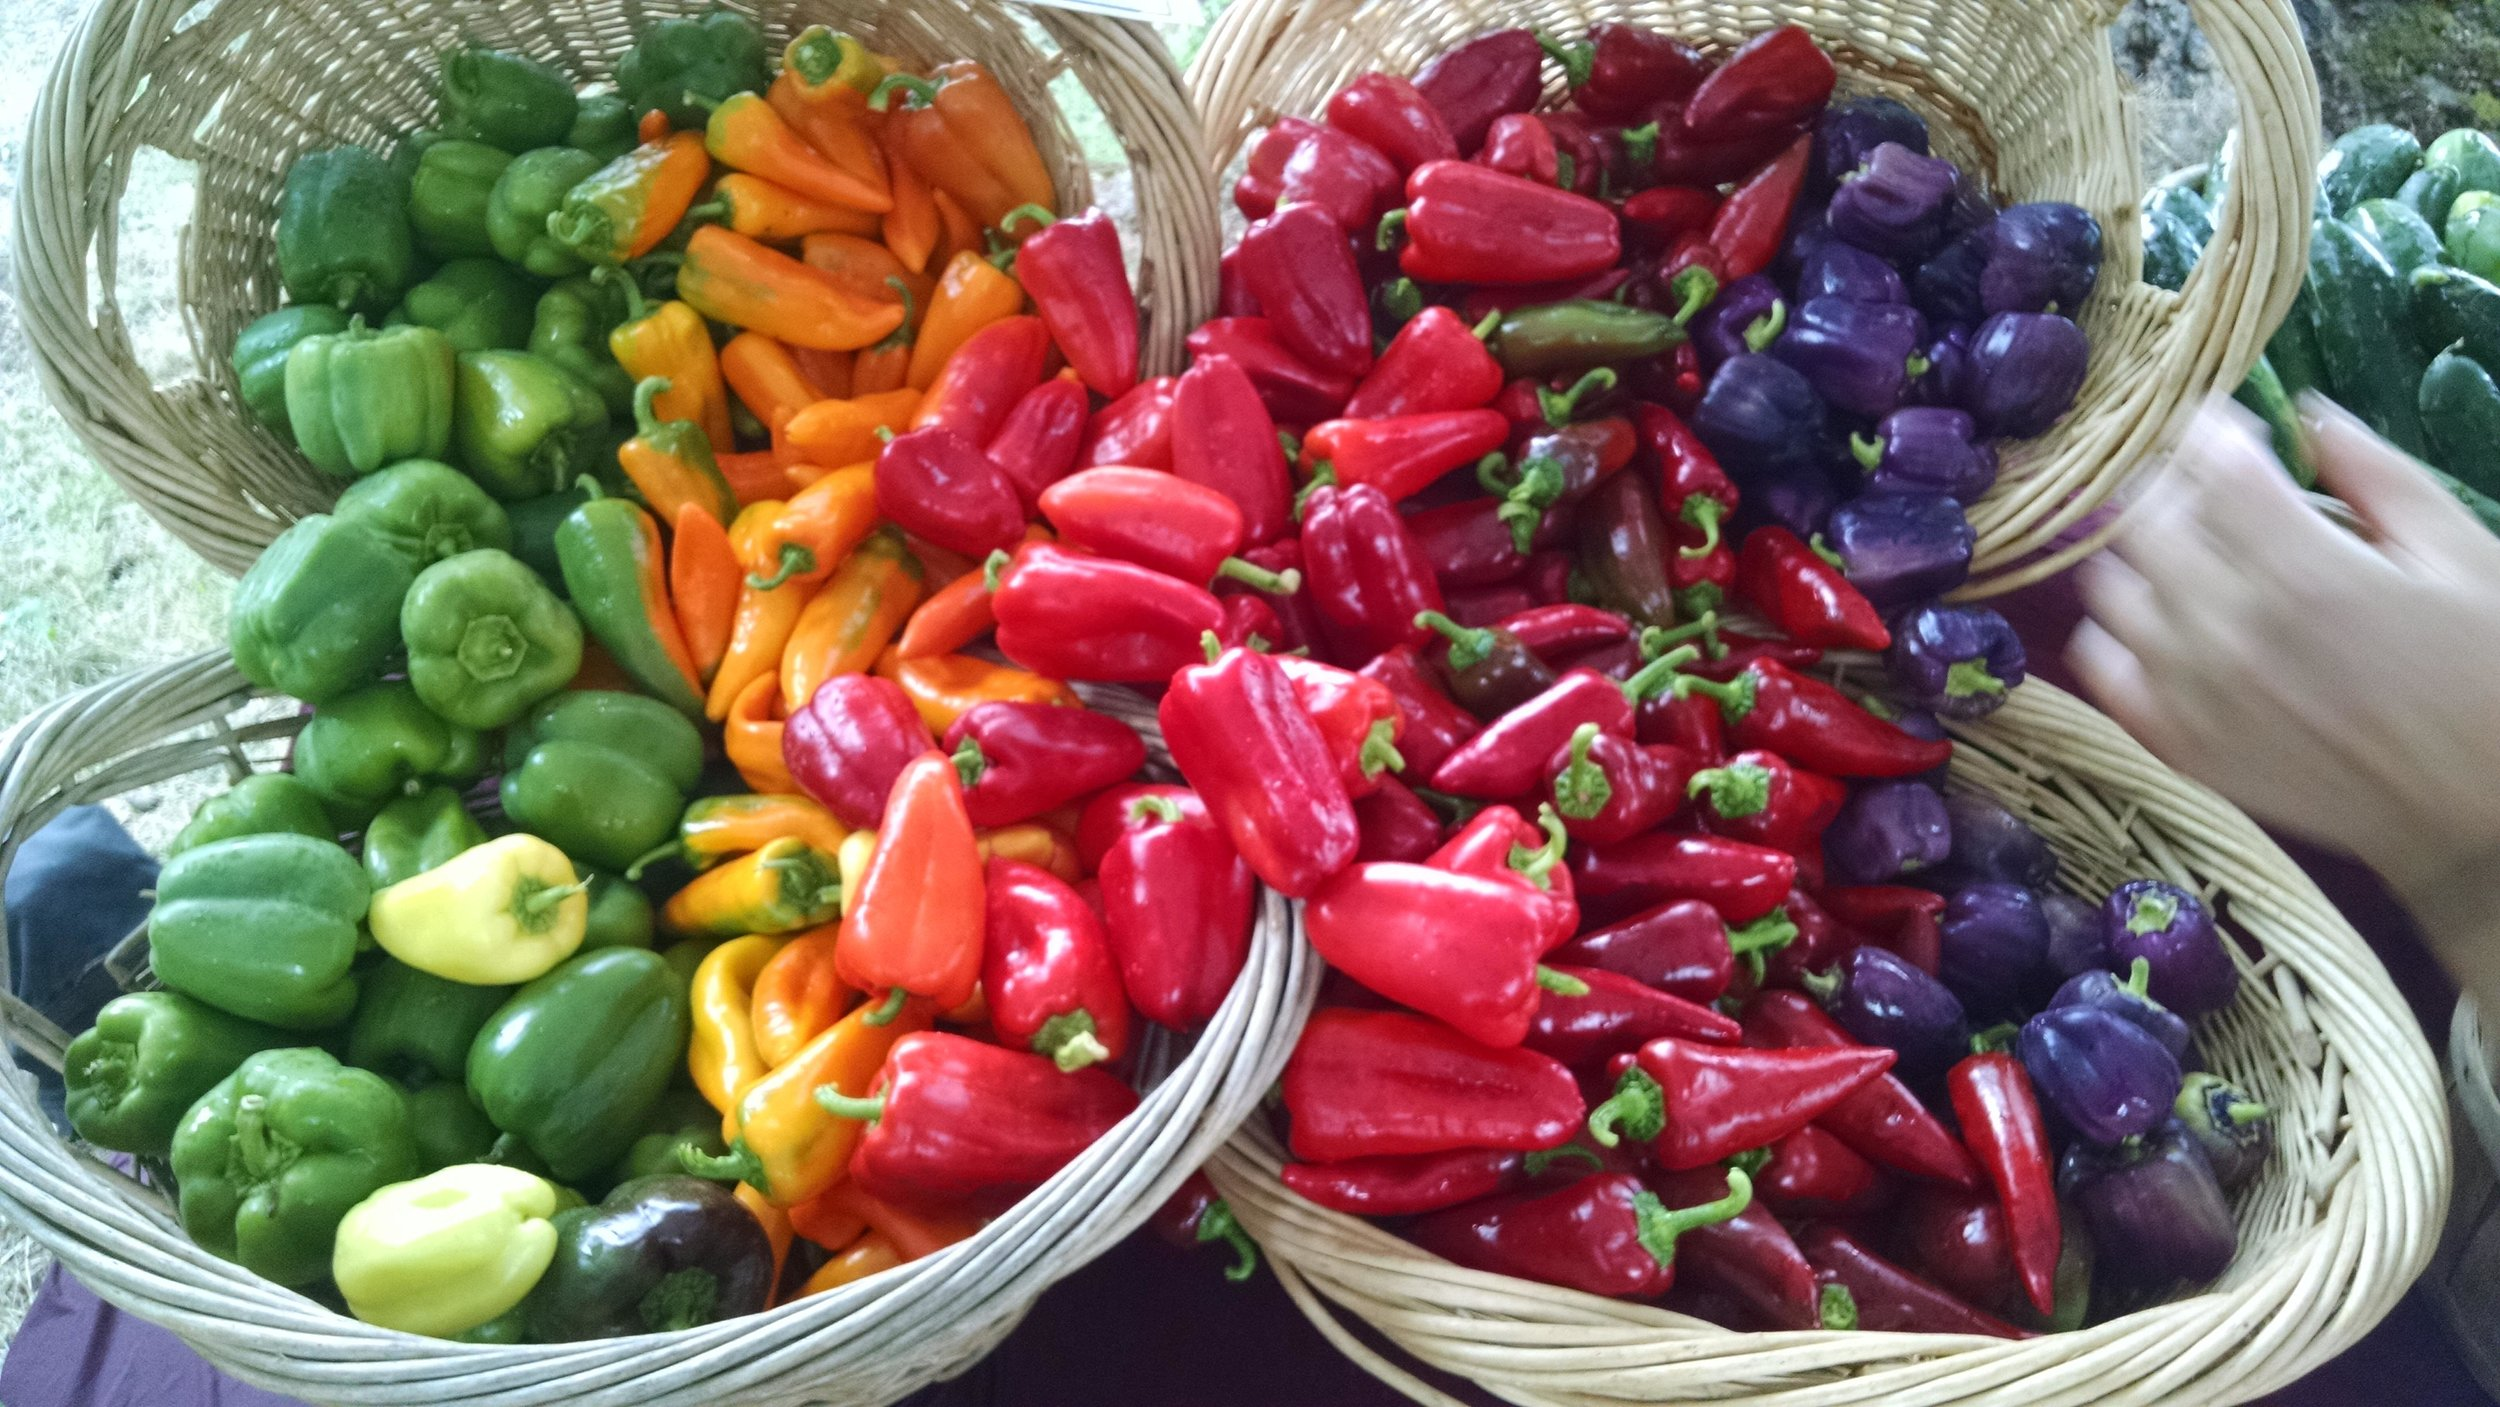 Just another magnificent farm stand pepper display by Sophie